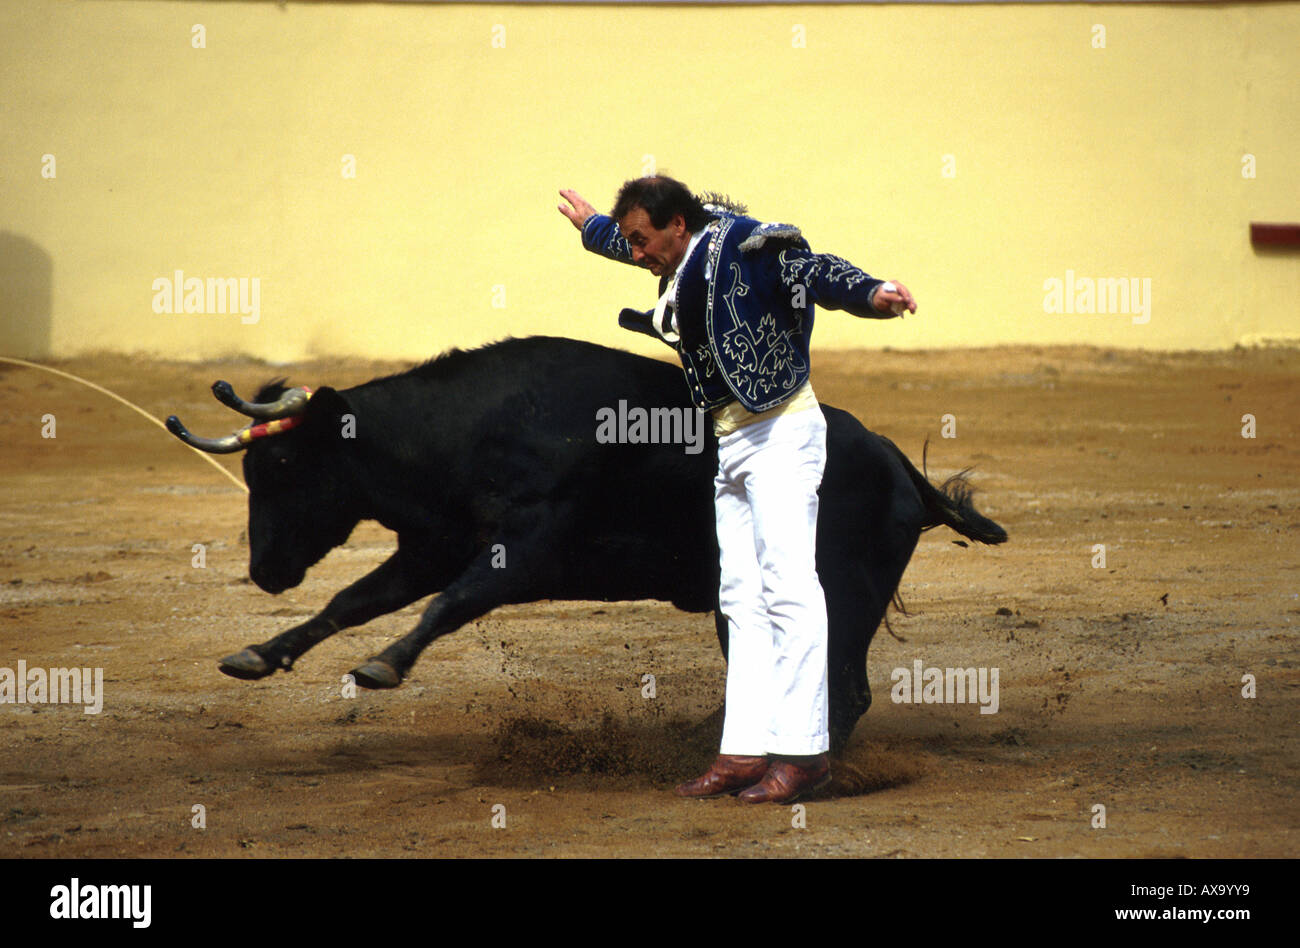 Man bullfighting, Ecarteur, Course Landaise, an ancient form of bullfighting that does not involve any blood shed, Stock Photo